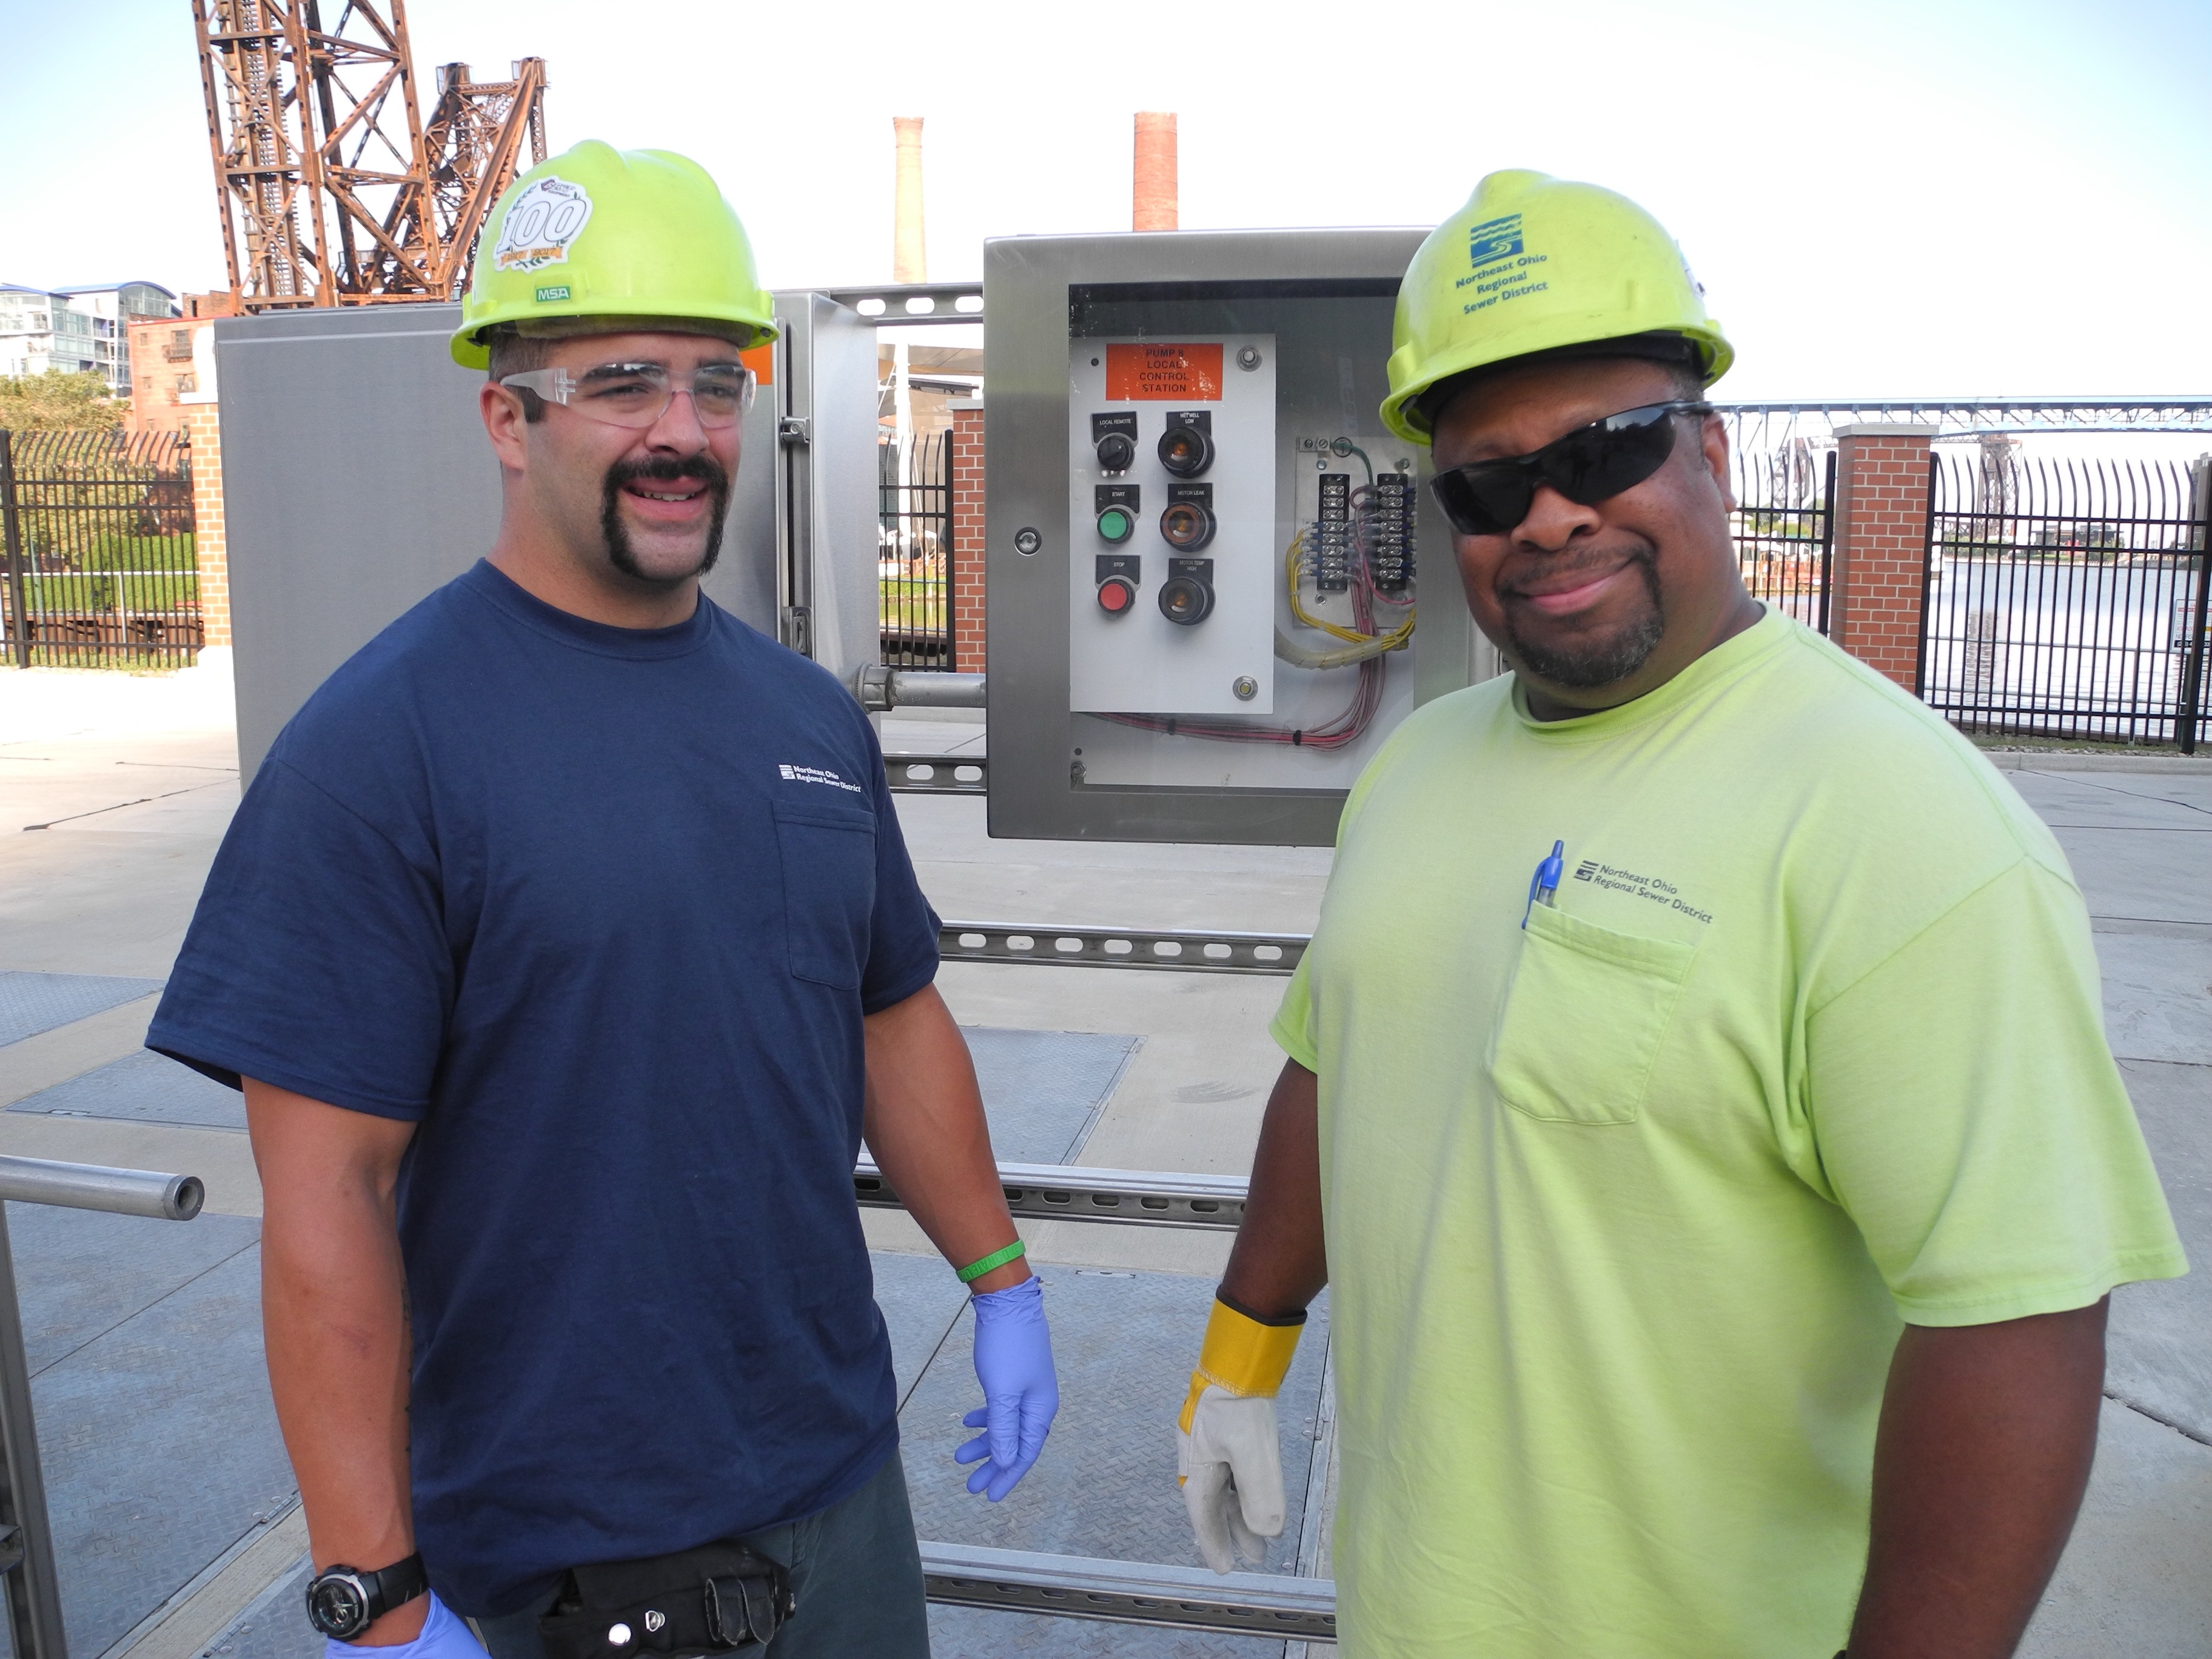 Two males stand in safety glasses and bright safety-yellow hard hats in front of a pump station electrical panel, smiling for the camera.